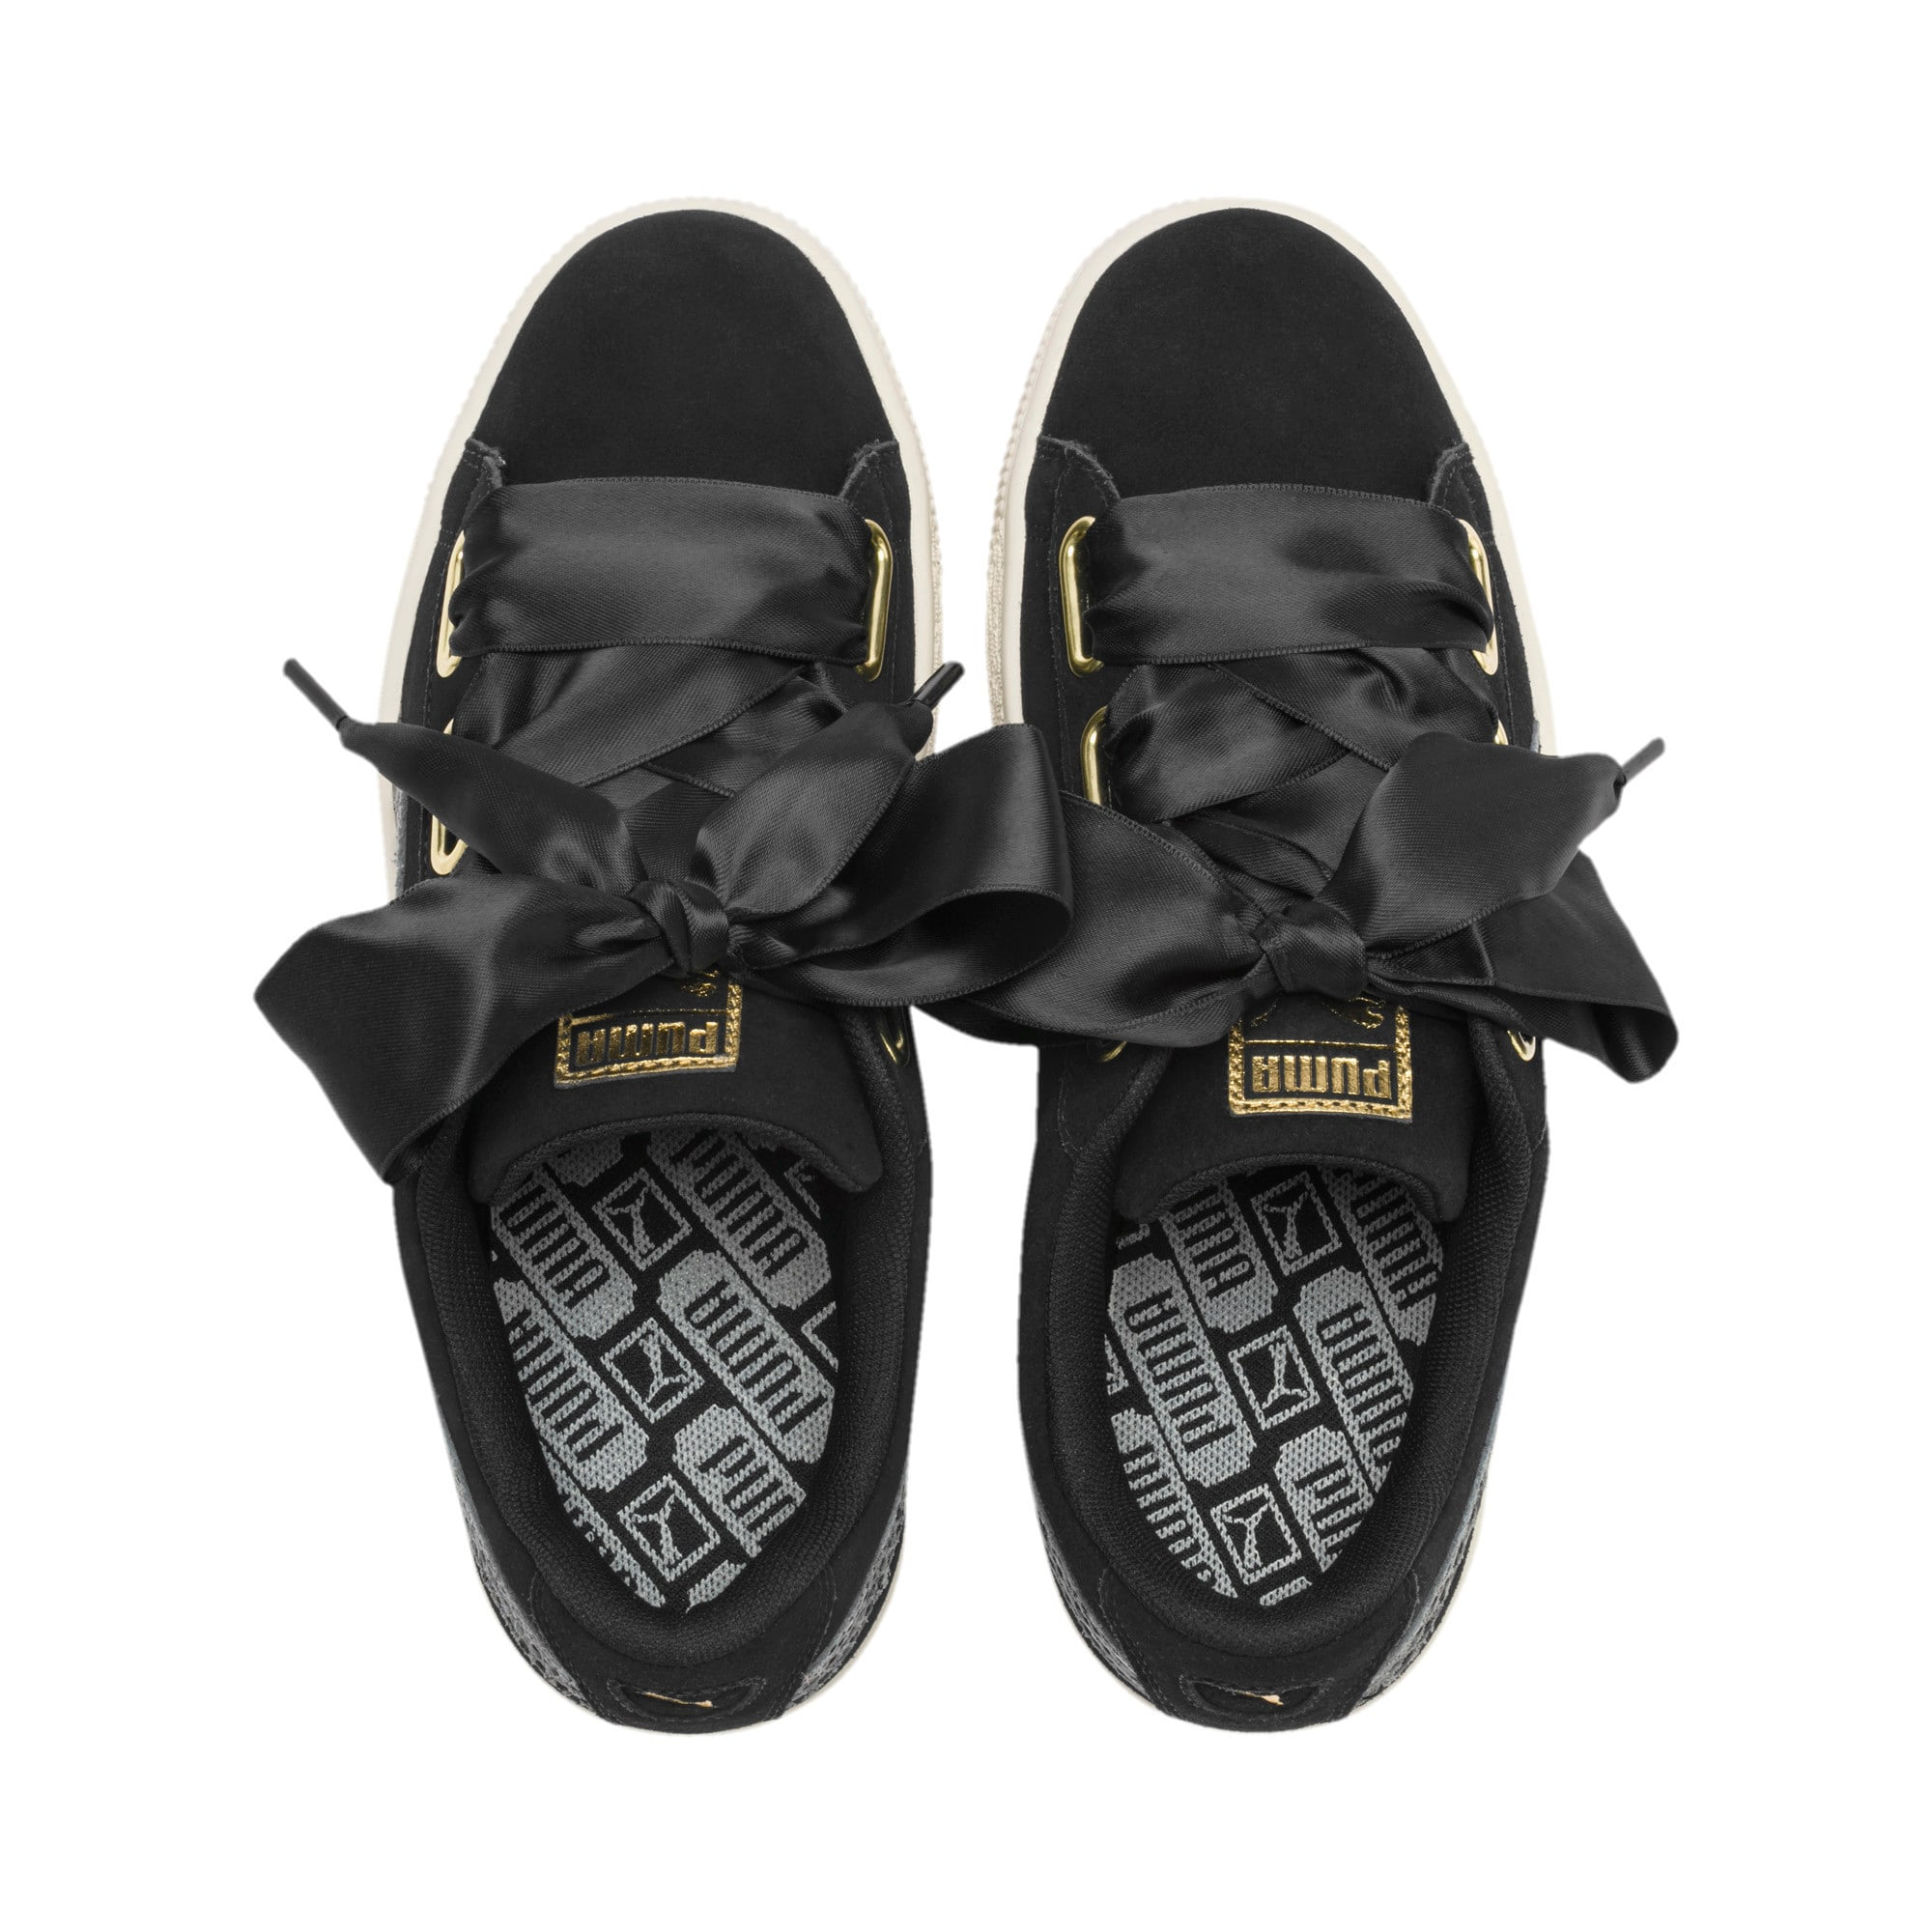 Thumbnail 4 of Suede Heart Snake Lux Women's Trainers, Puma Black-Puma Team Gold, medium-IND